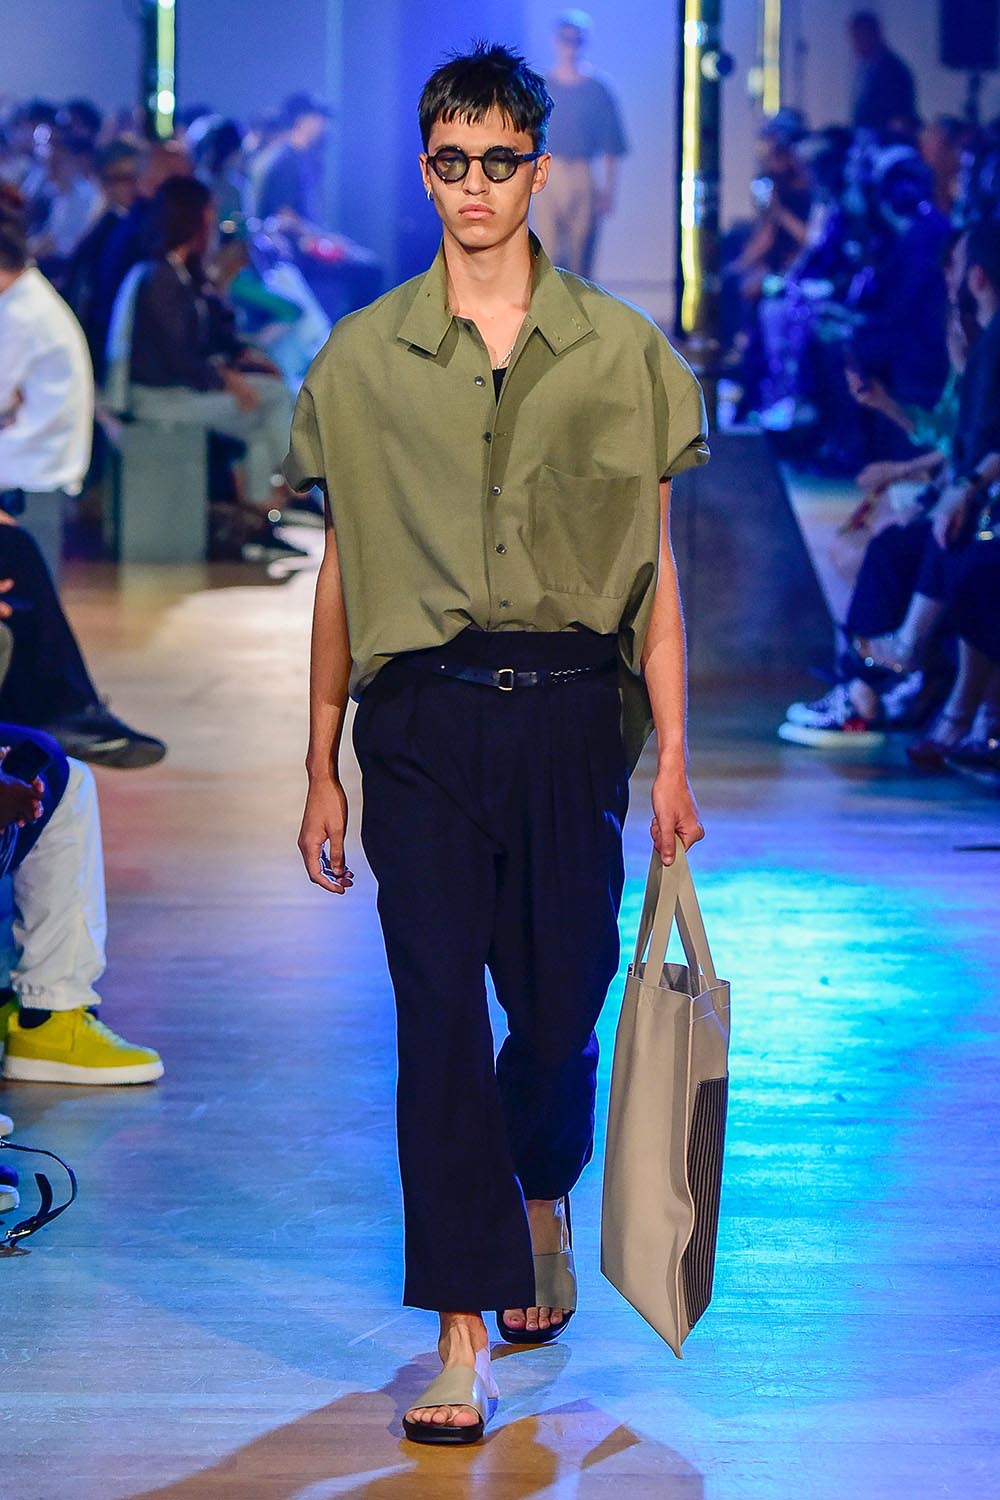 Cerruti 1881 Paris Fashion Week Men's SS19 - Sagaboi - Look 8